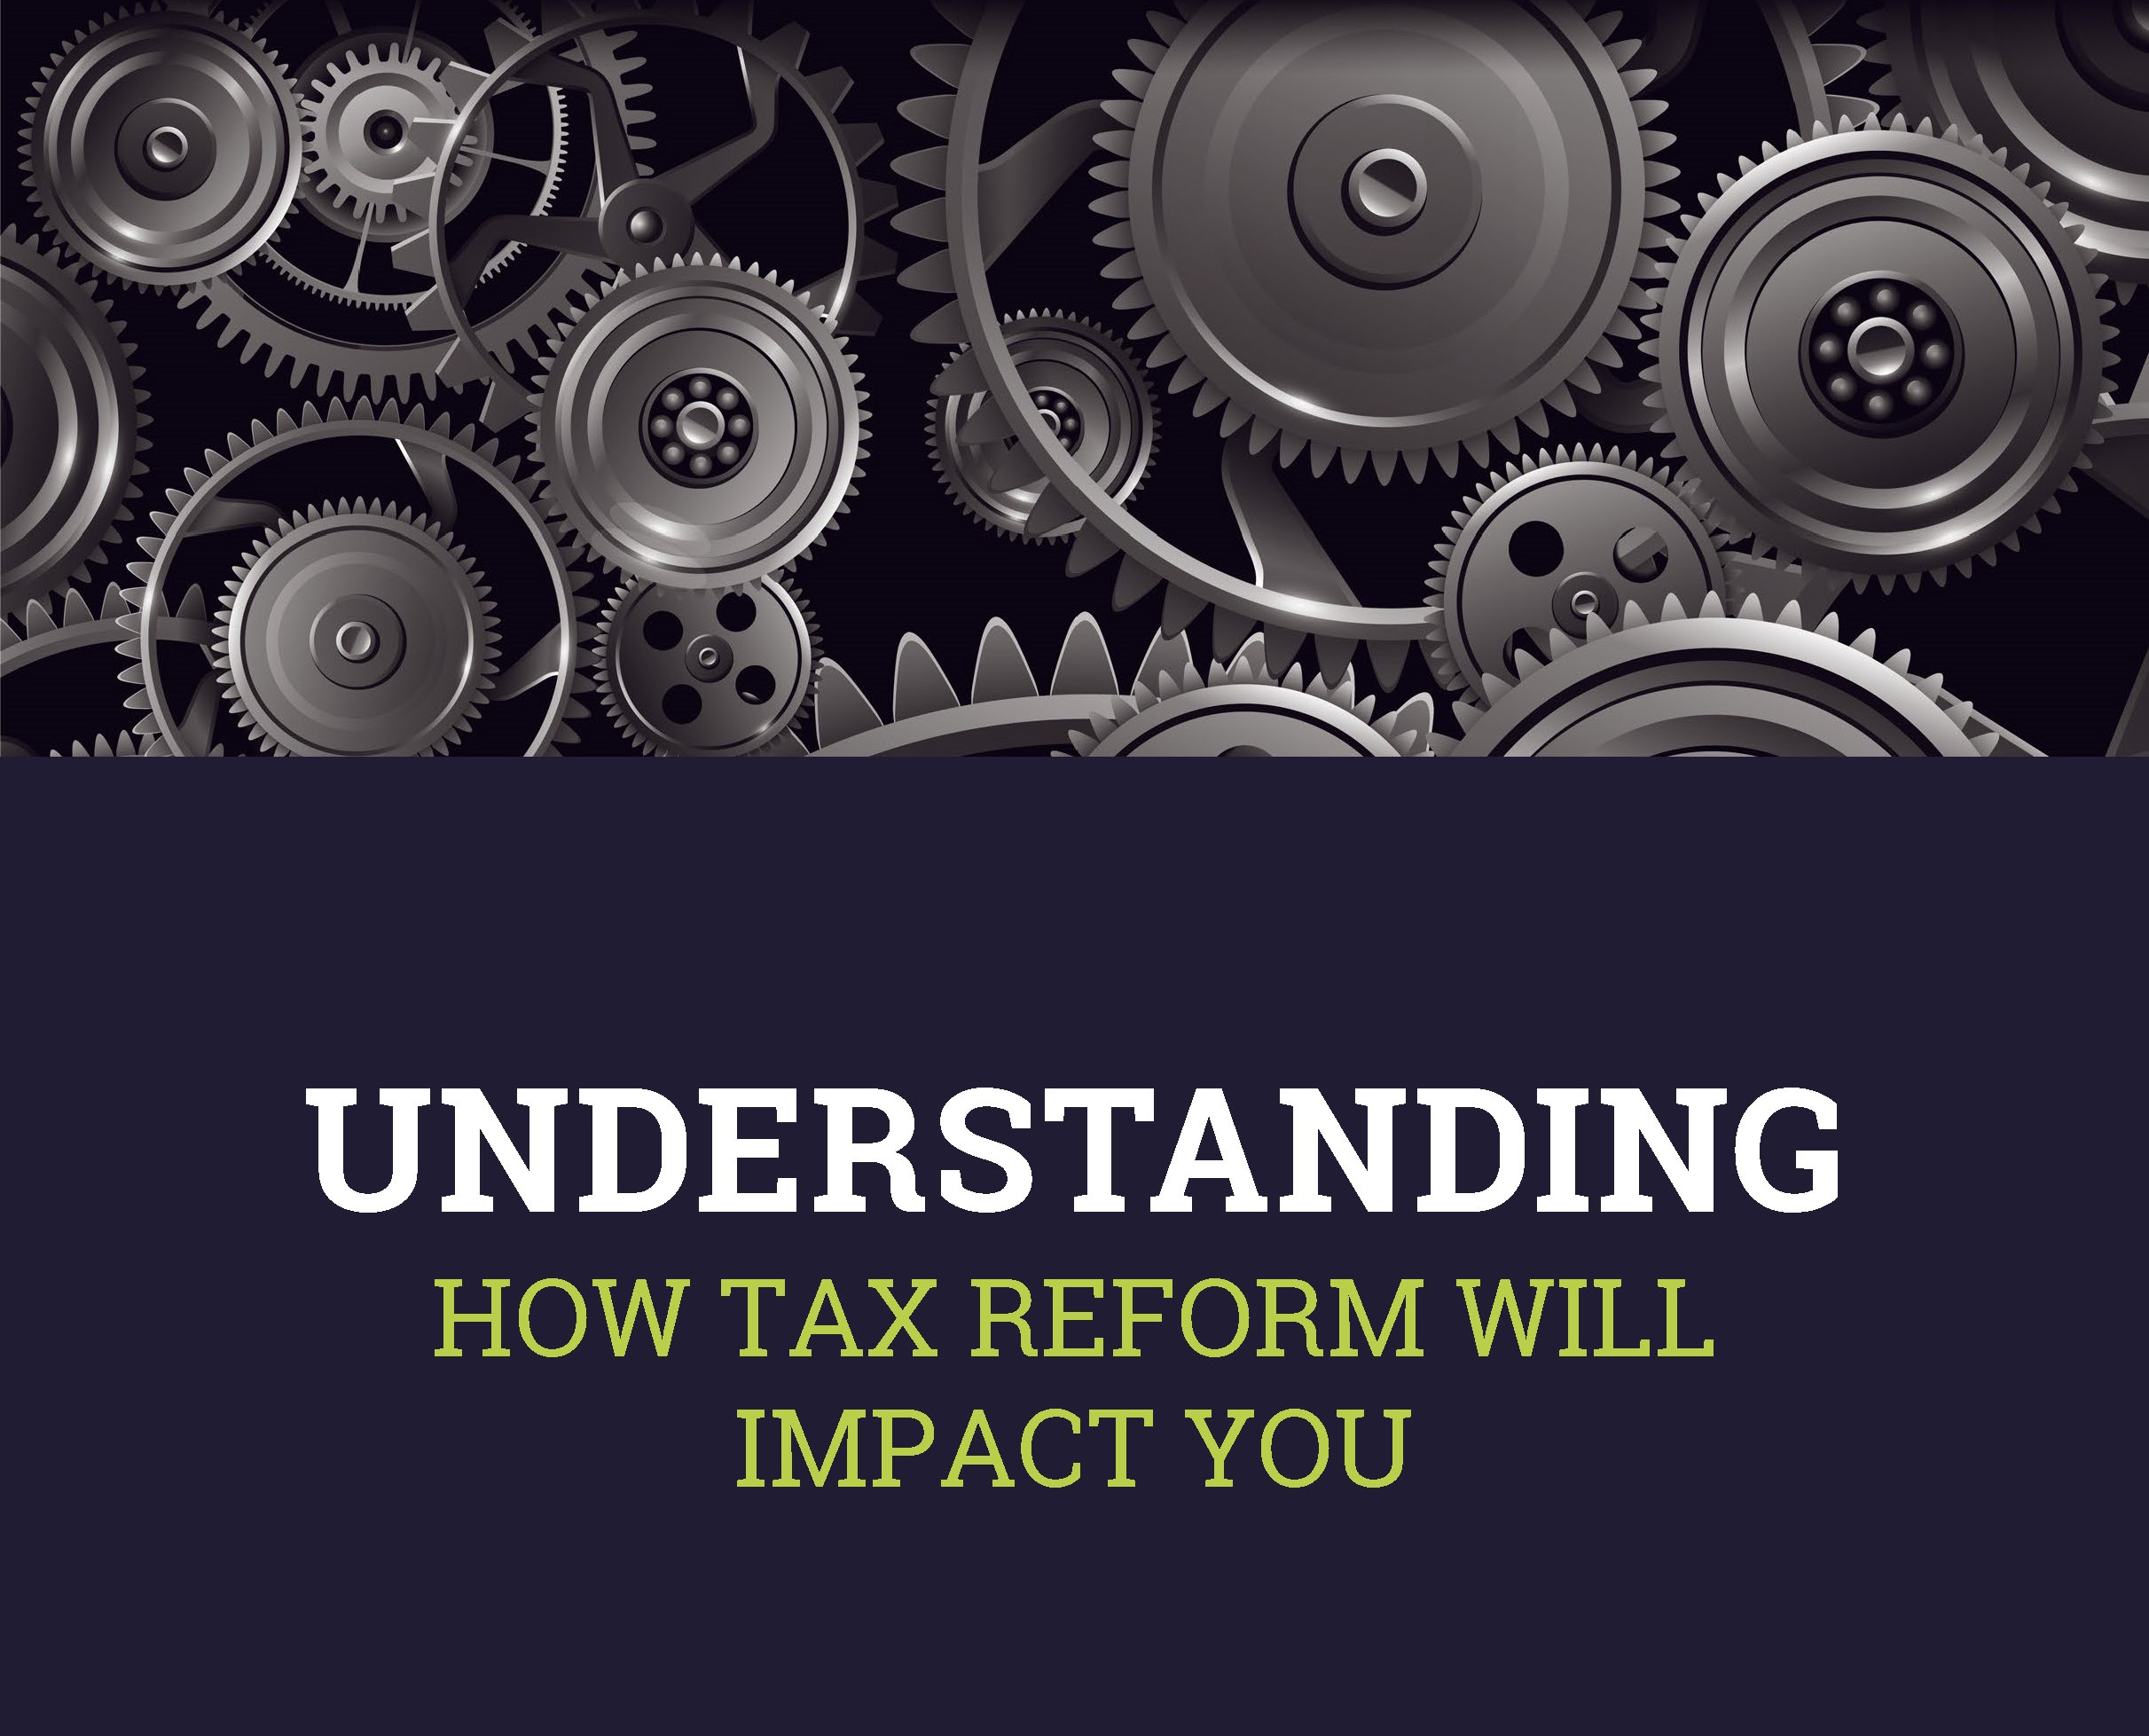 Pages from Tax_Law_Changes_E-book_Cover_03.09.18_1327